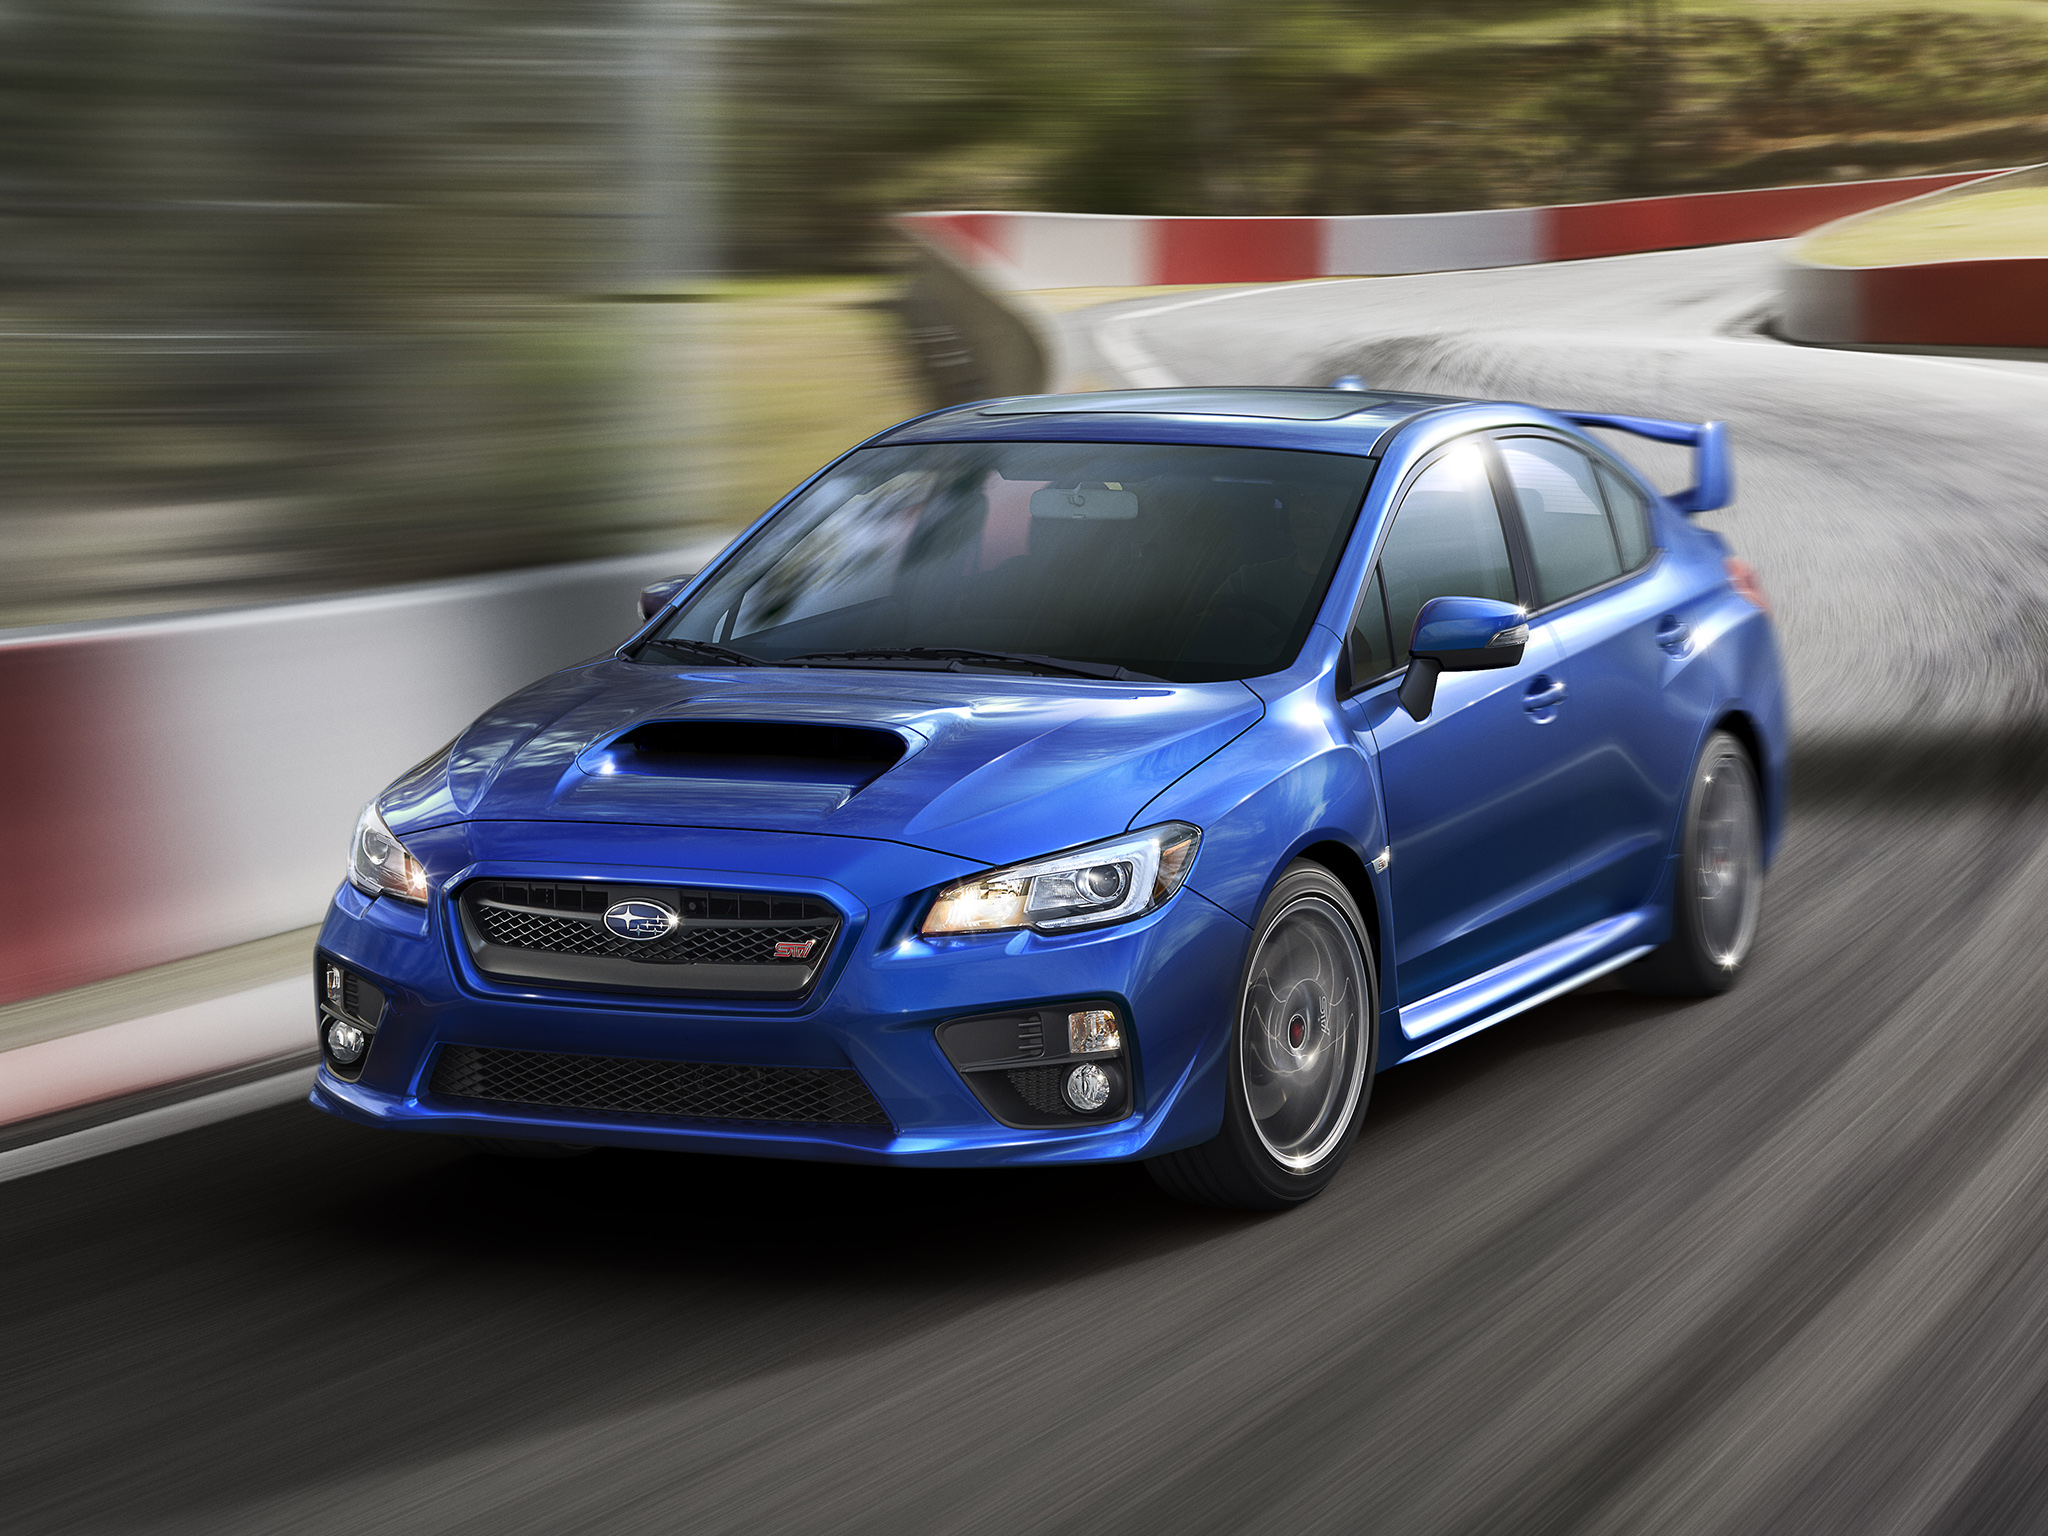 Free Download 2015 Subaru Wrx Sti 4 Wallpaper 2048x1536 231100